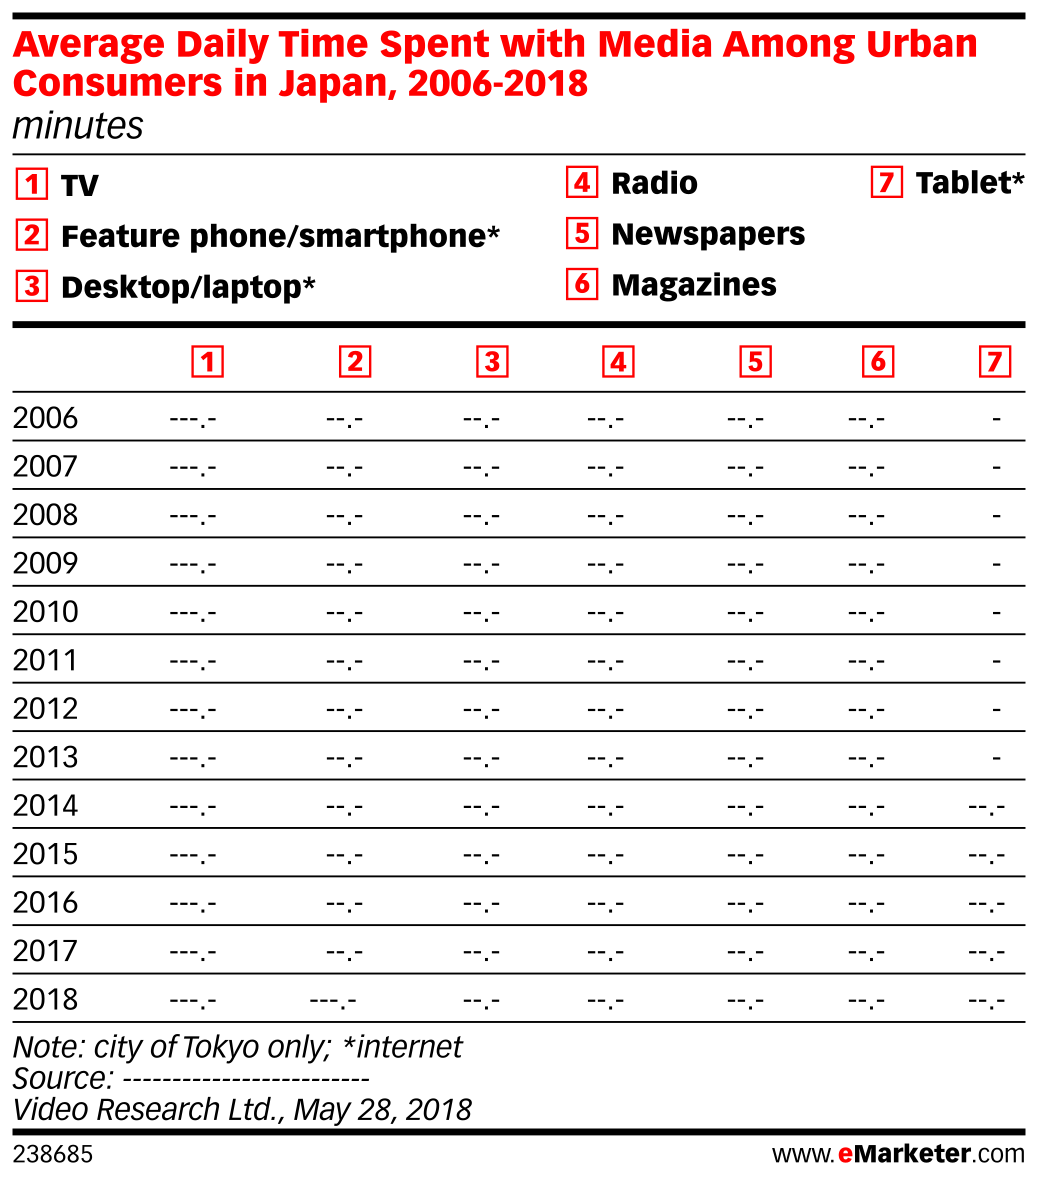 Average Daily Time Spent with Media Among Urban Consumers in Japan, 2006-2018 (minutes)